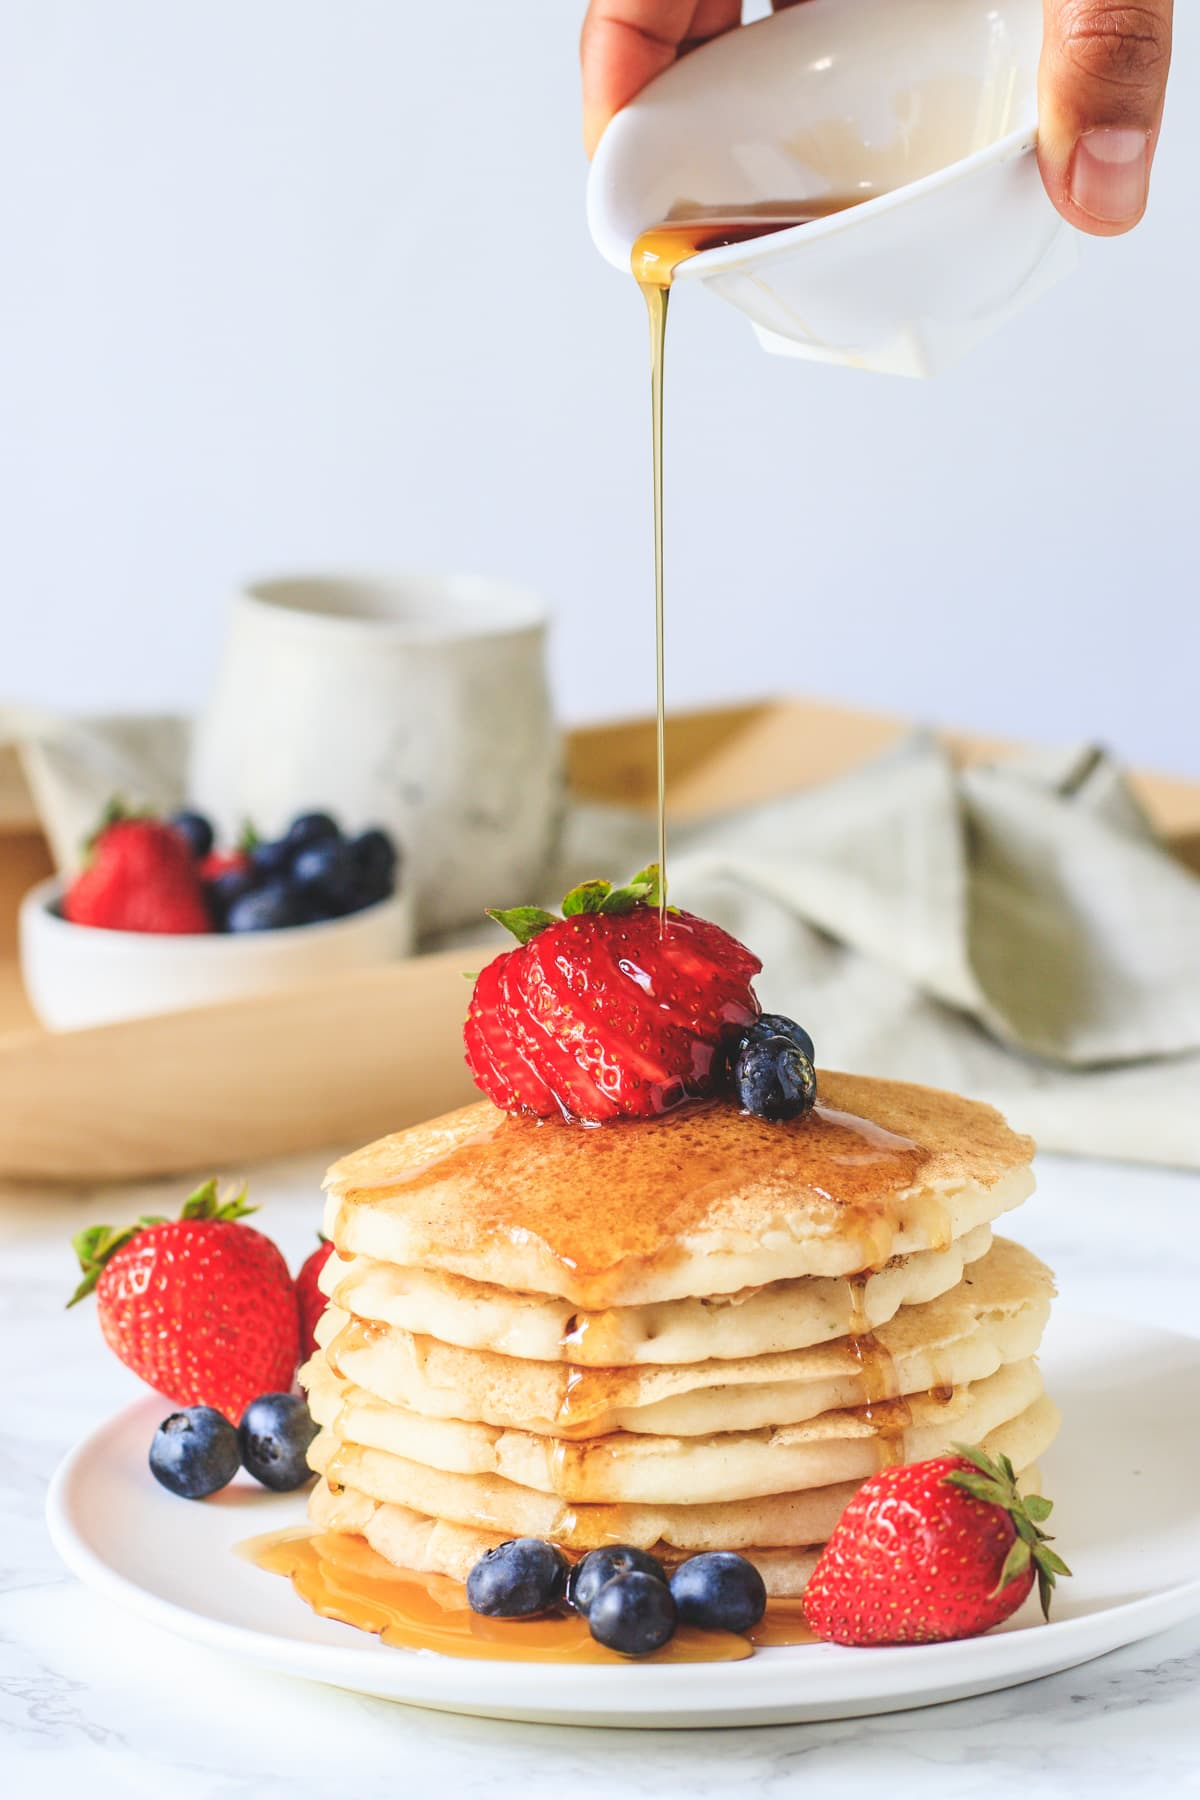 eggless panckes stacked in a plate with garnish of strawberries, blueberries and drizzle of maple syrup